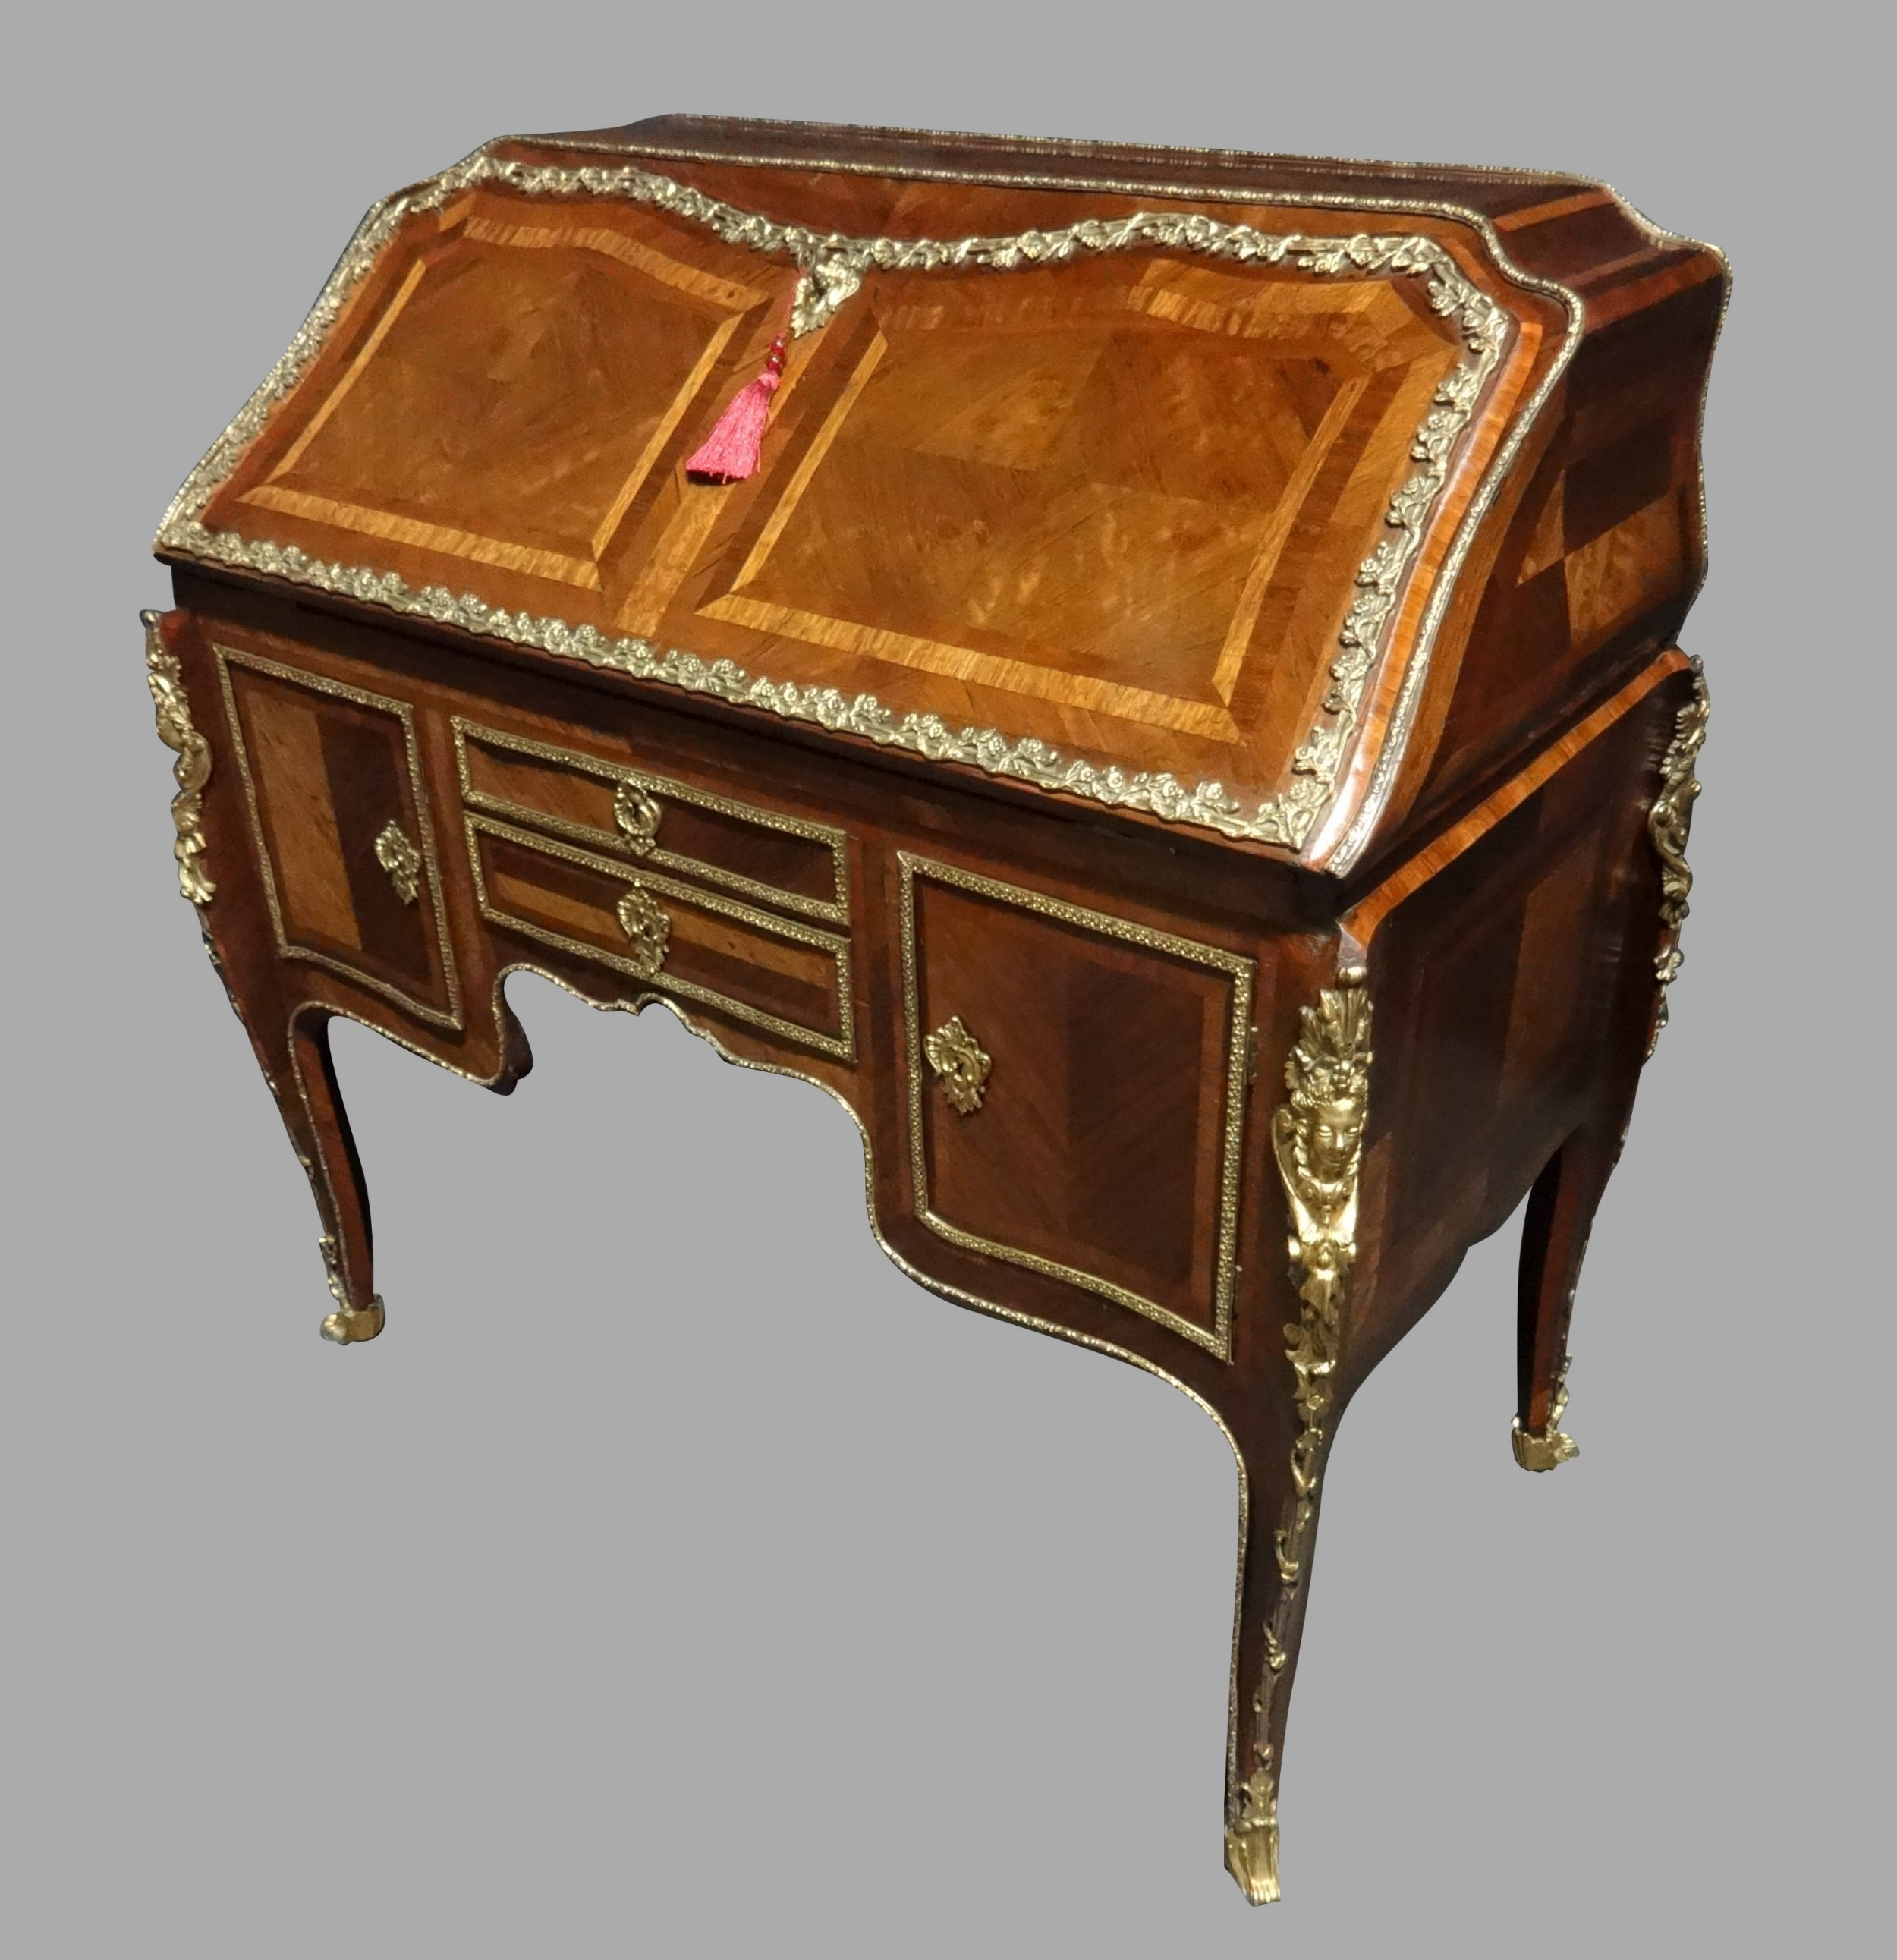 excellent quality early 19thc french kingwood parquetry bureau